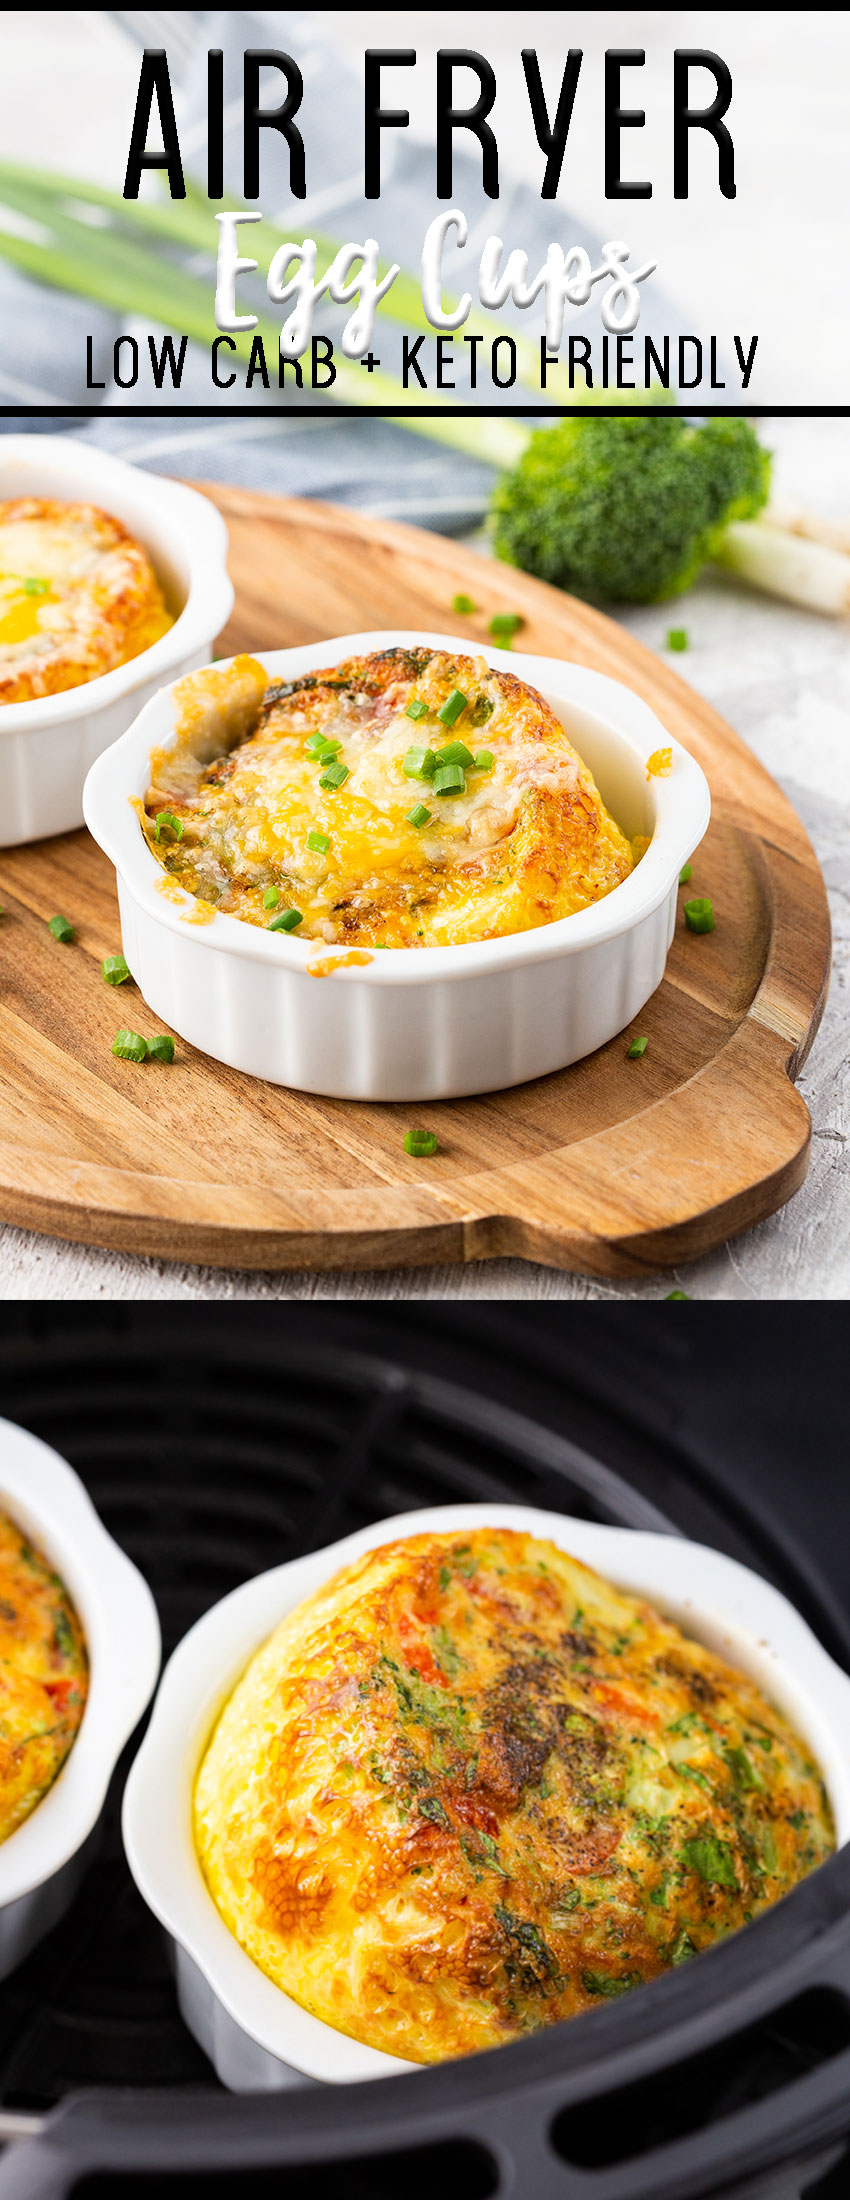 Air fryer egg cups with mixed vegetables and plenty of cheese.